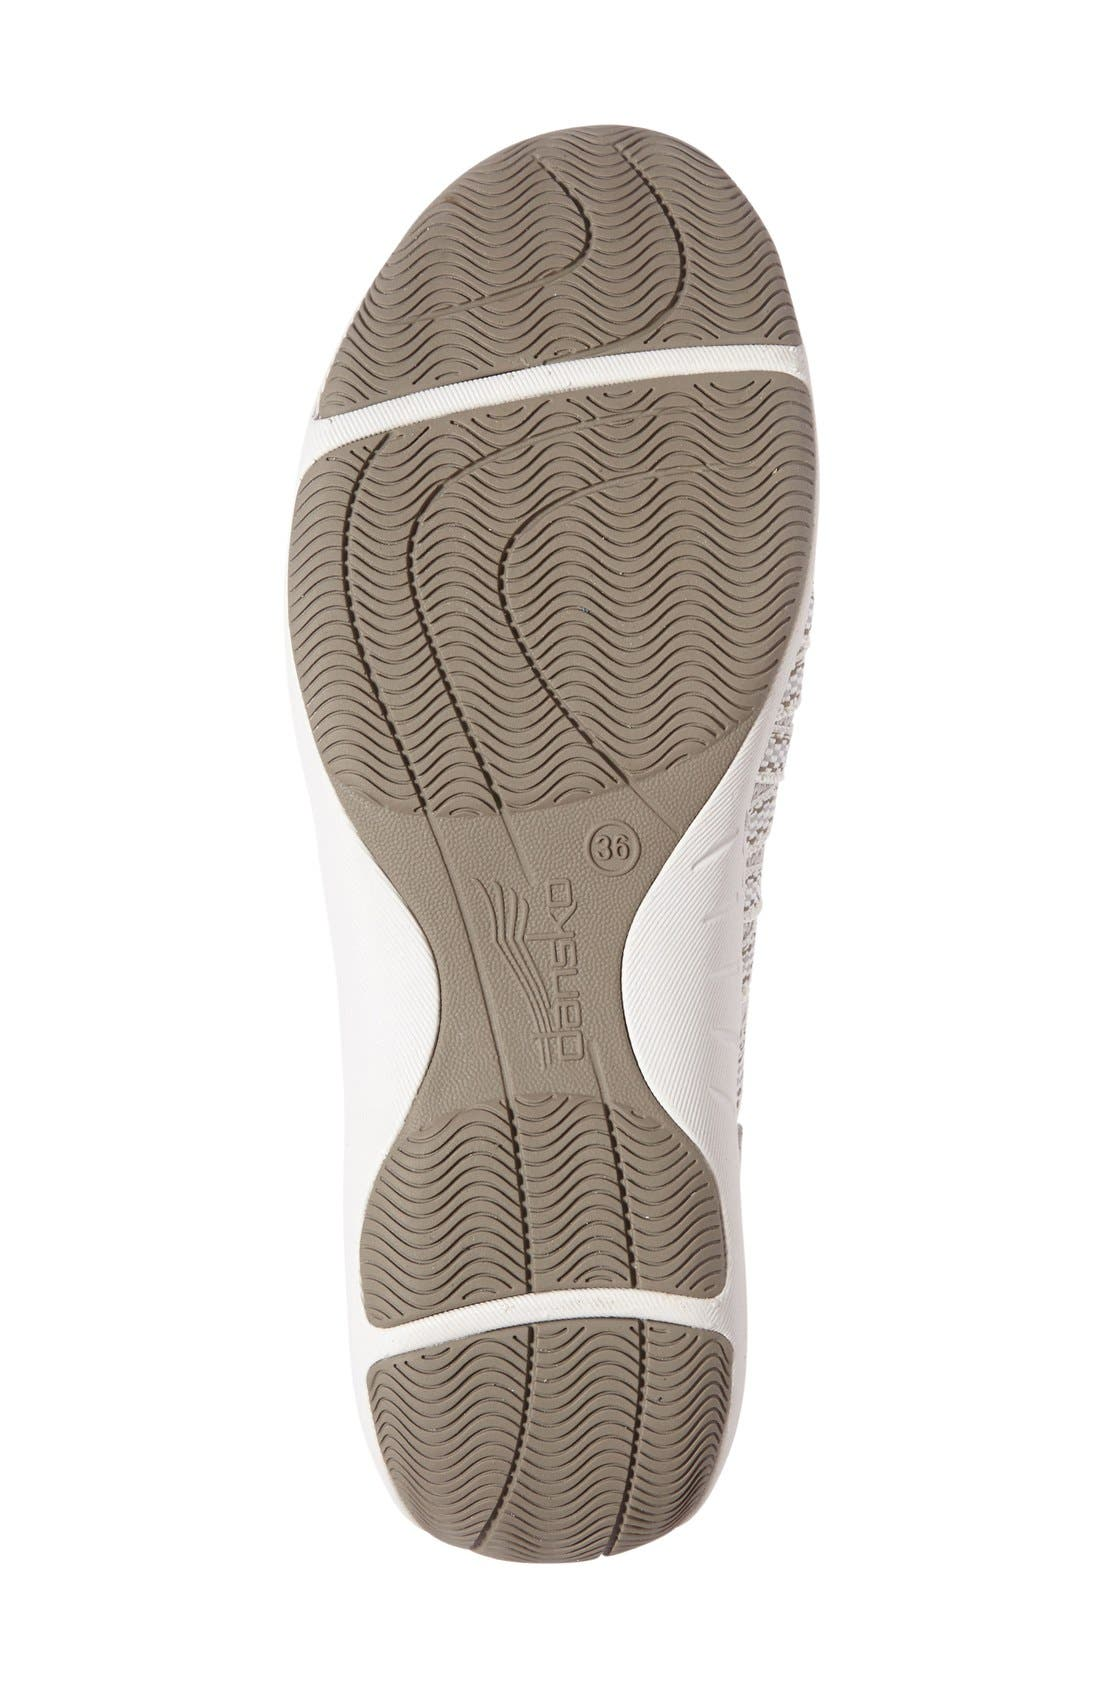 Halifax Collection Honor Sneaker,                             Alternate thumbnail 32, color,